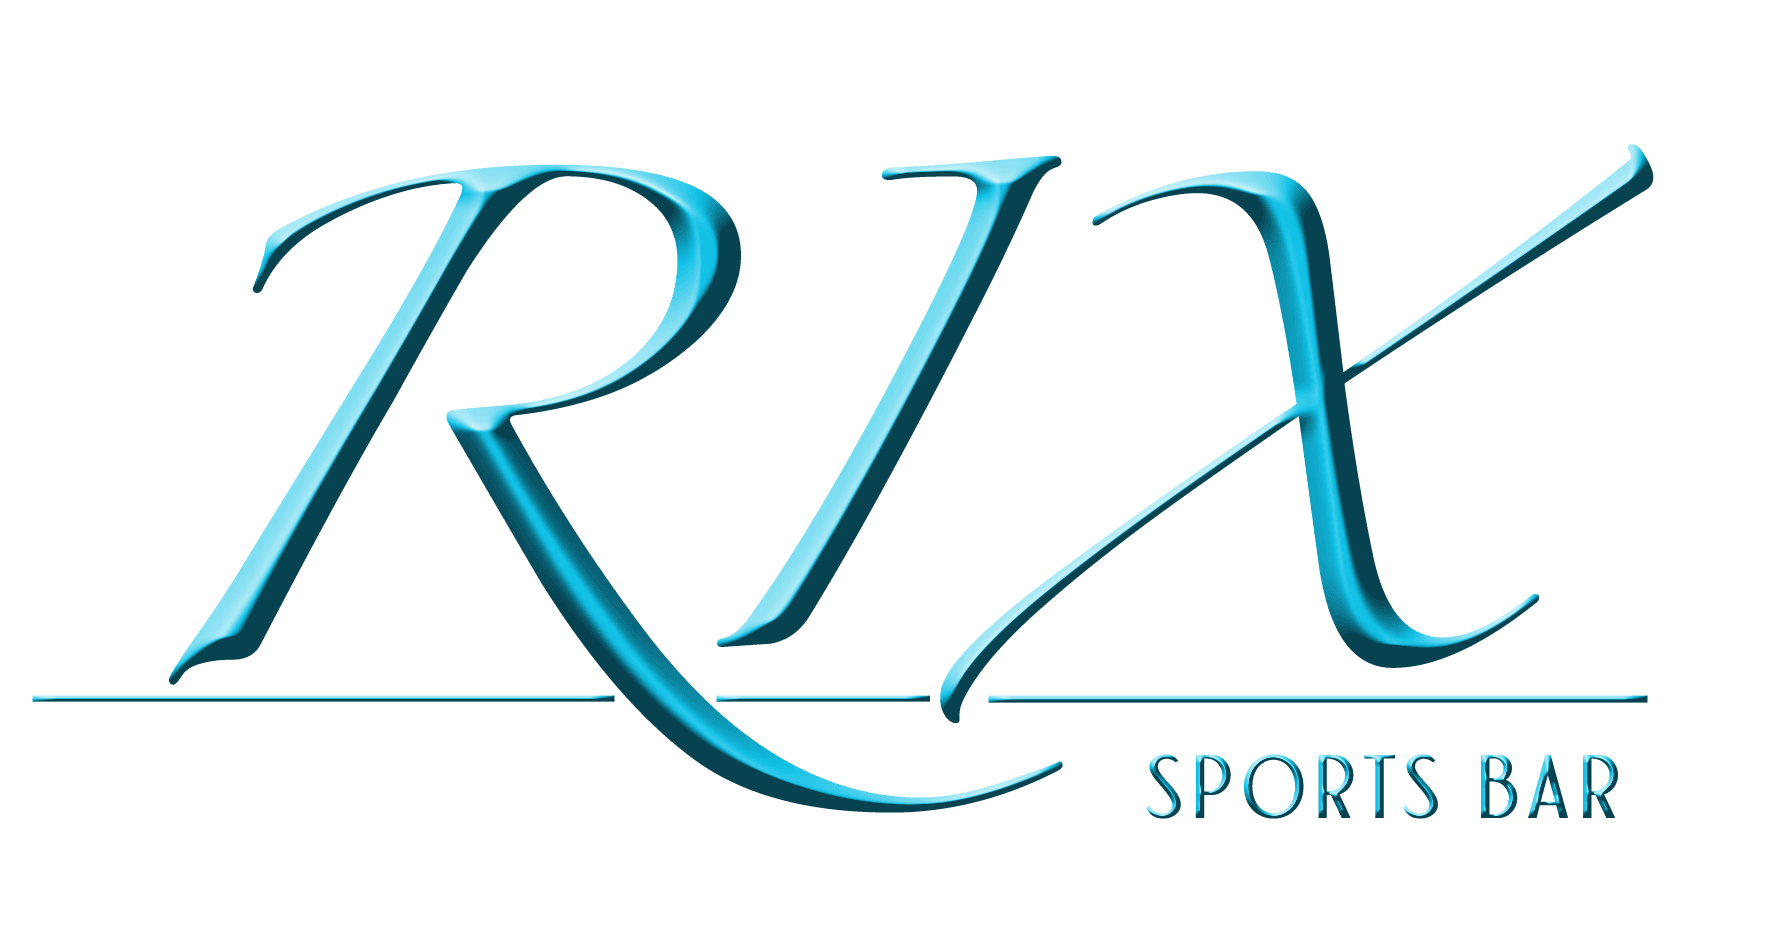 RIX-SPORTS-BAR-LOGO